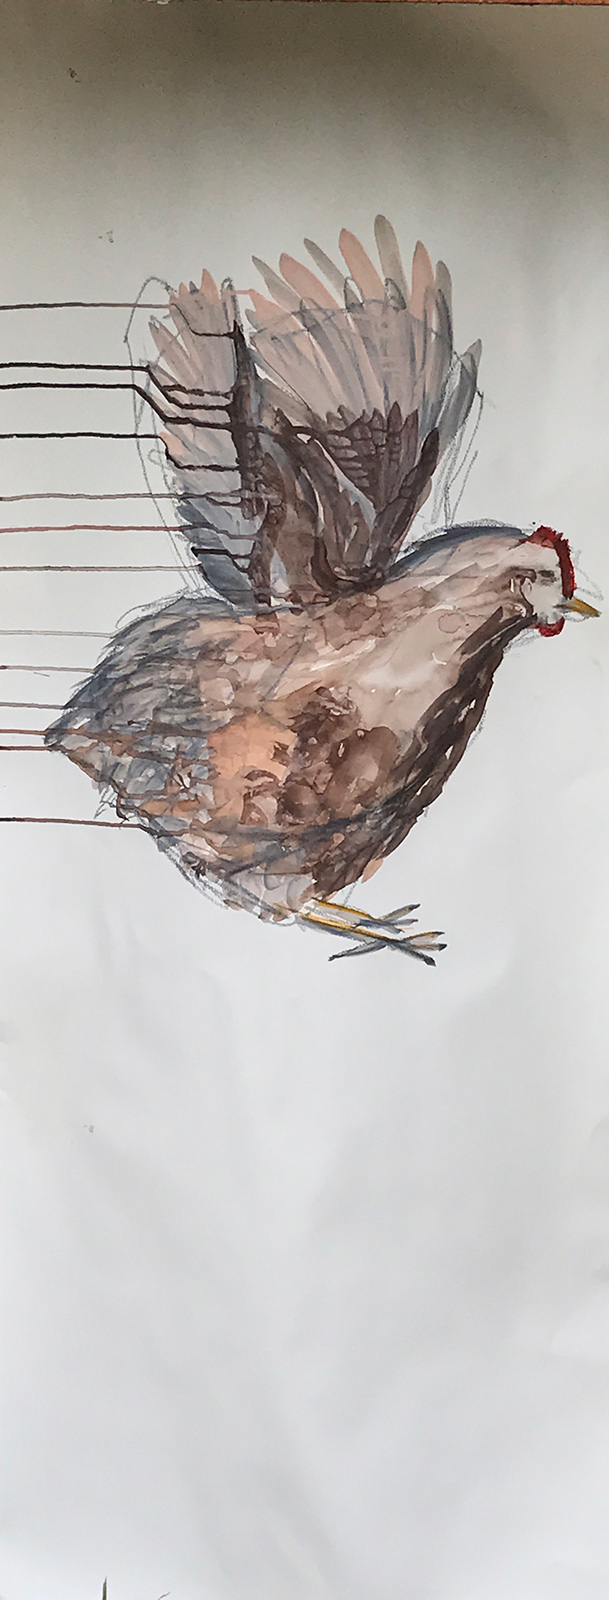 Everything is flying, 2016. Ink on paper, ca 48 x 122 cm.